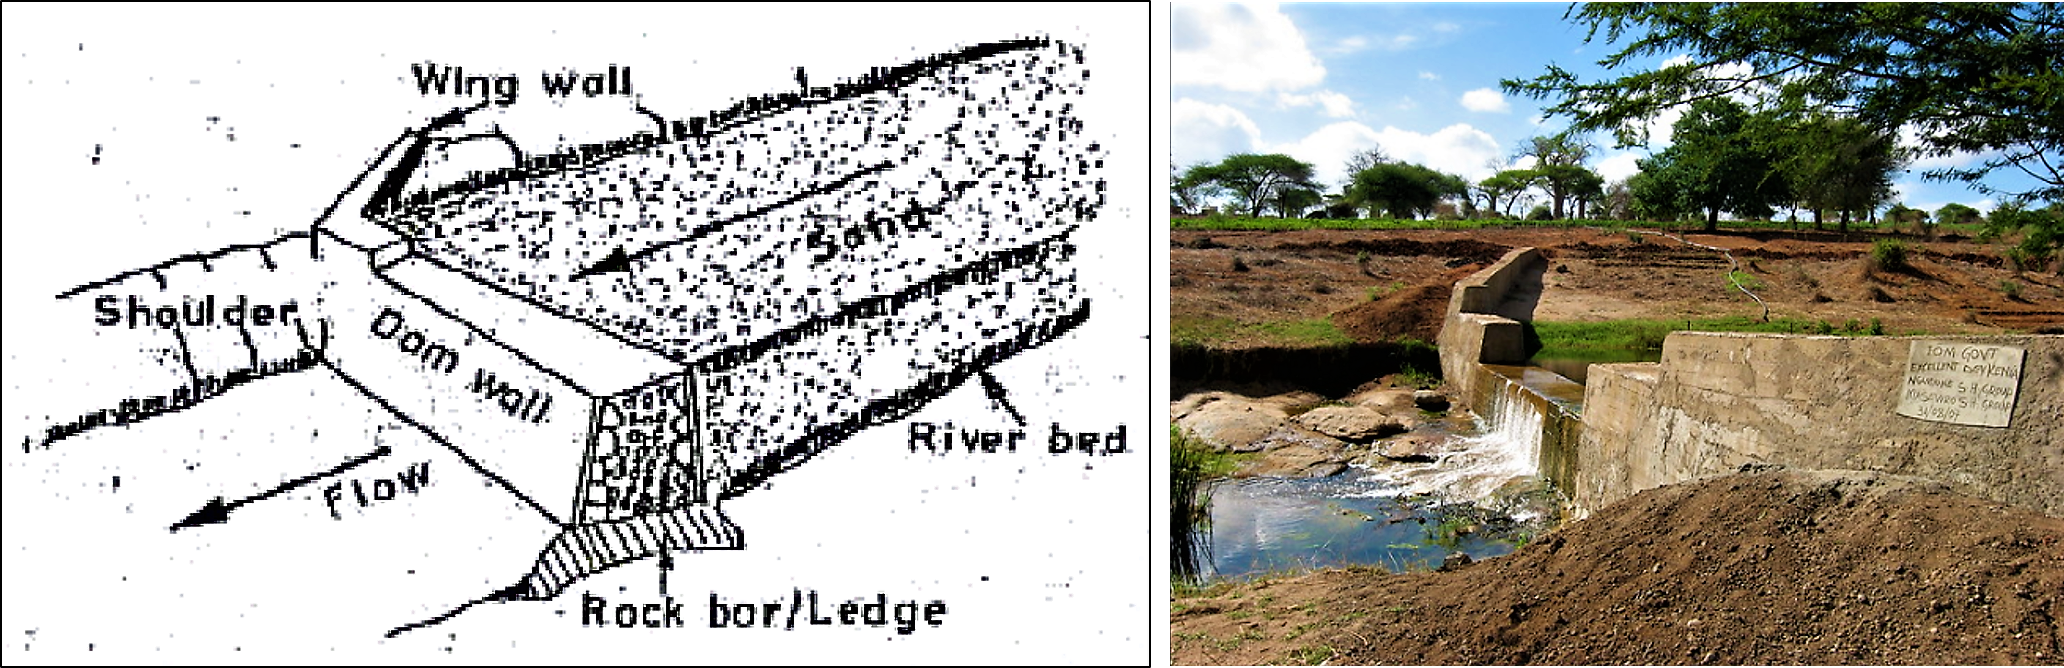 Structure of sand storage dam construction (right) and a sand dam build in Kenya (left). Source: PRACTICAL ACTION (n.y.) and THISISEXCELLENT (2009)